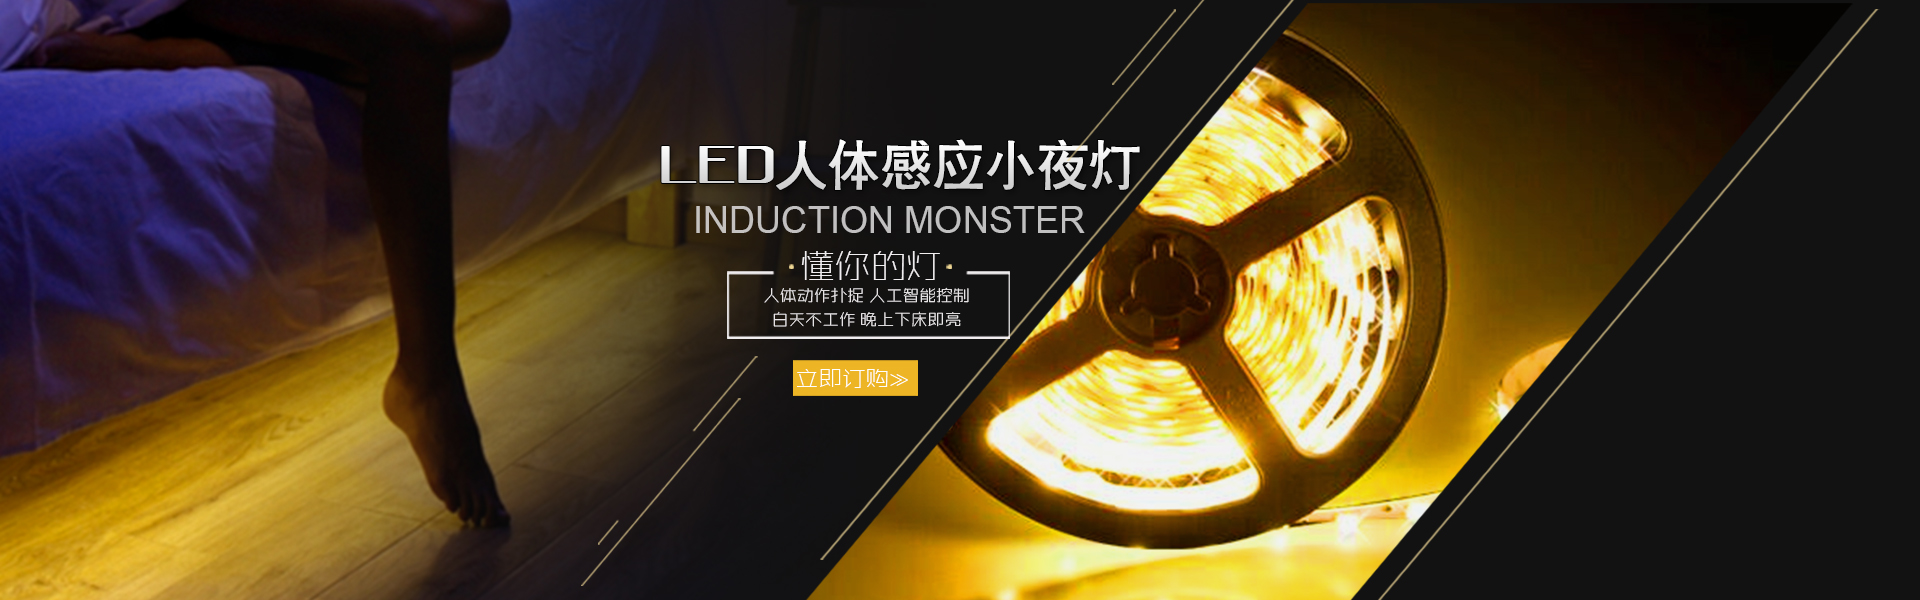 Body Sensor LED Bed Light